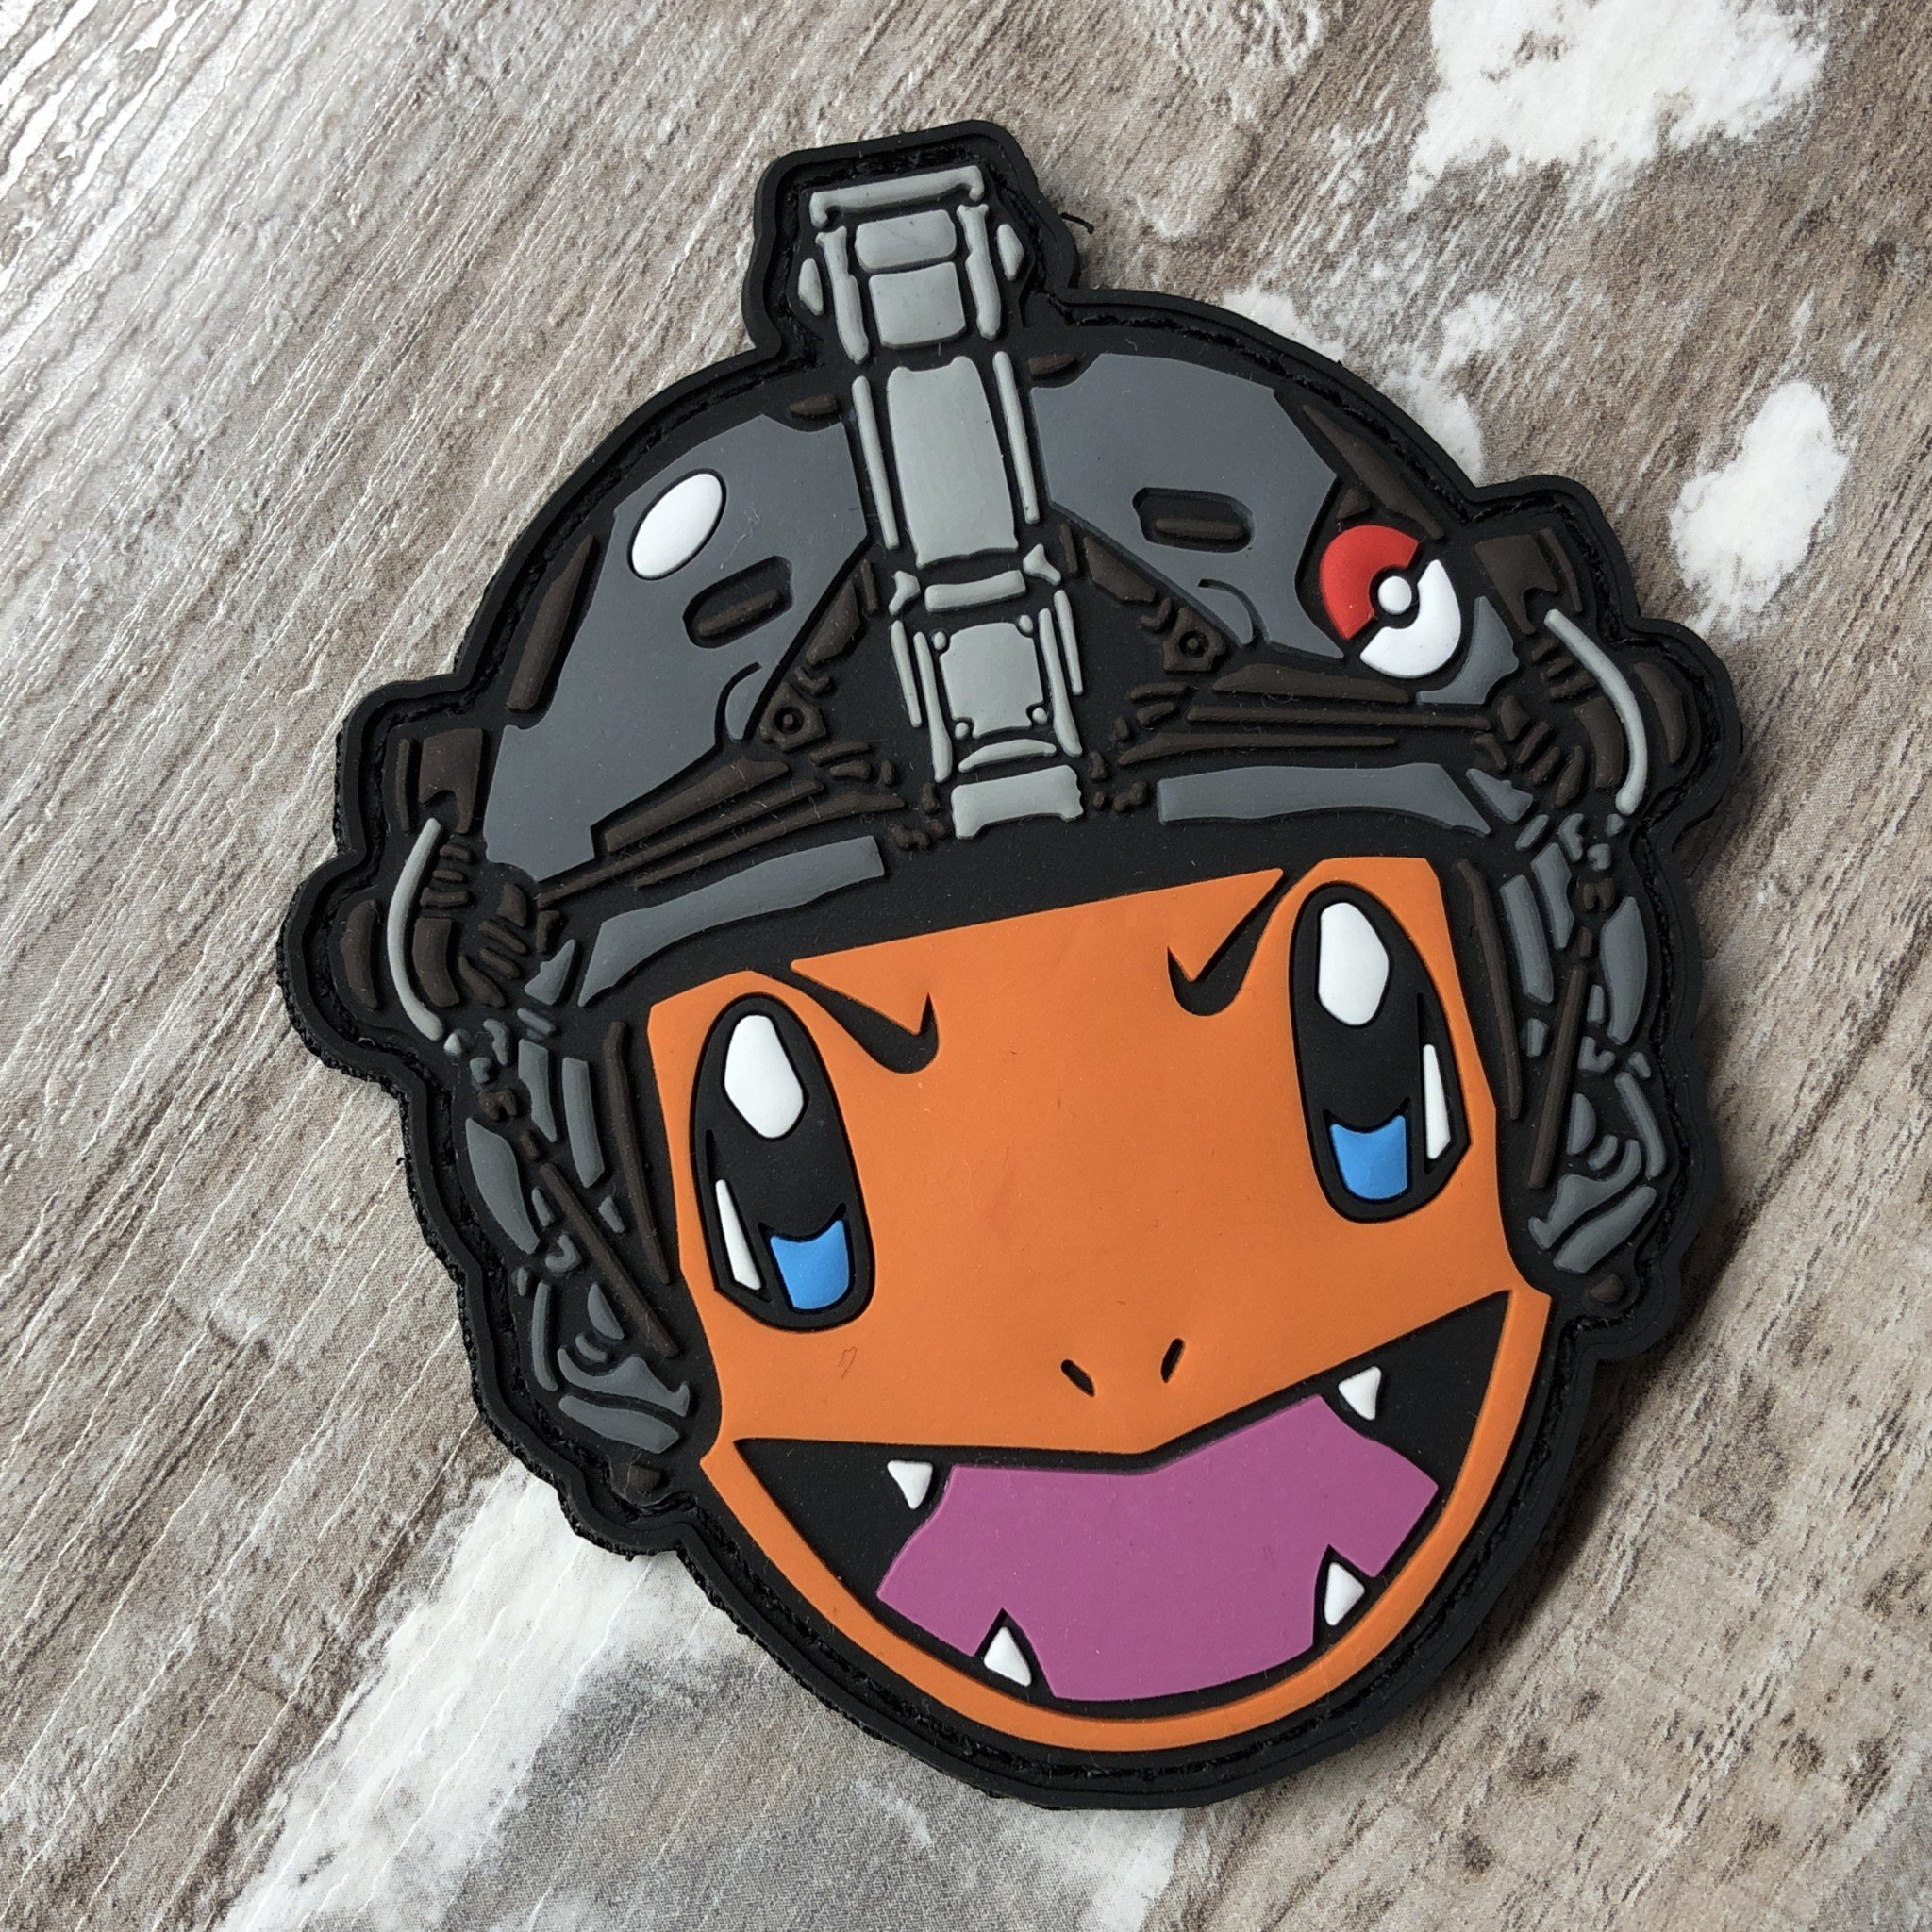 TACTICAL POKE NR. 004 ROT PVC PATCH